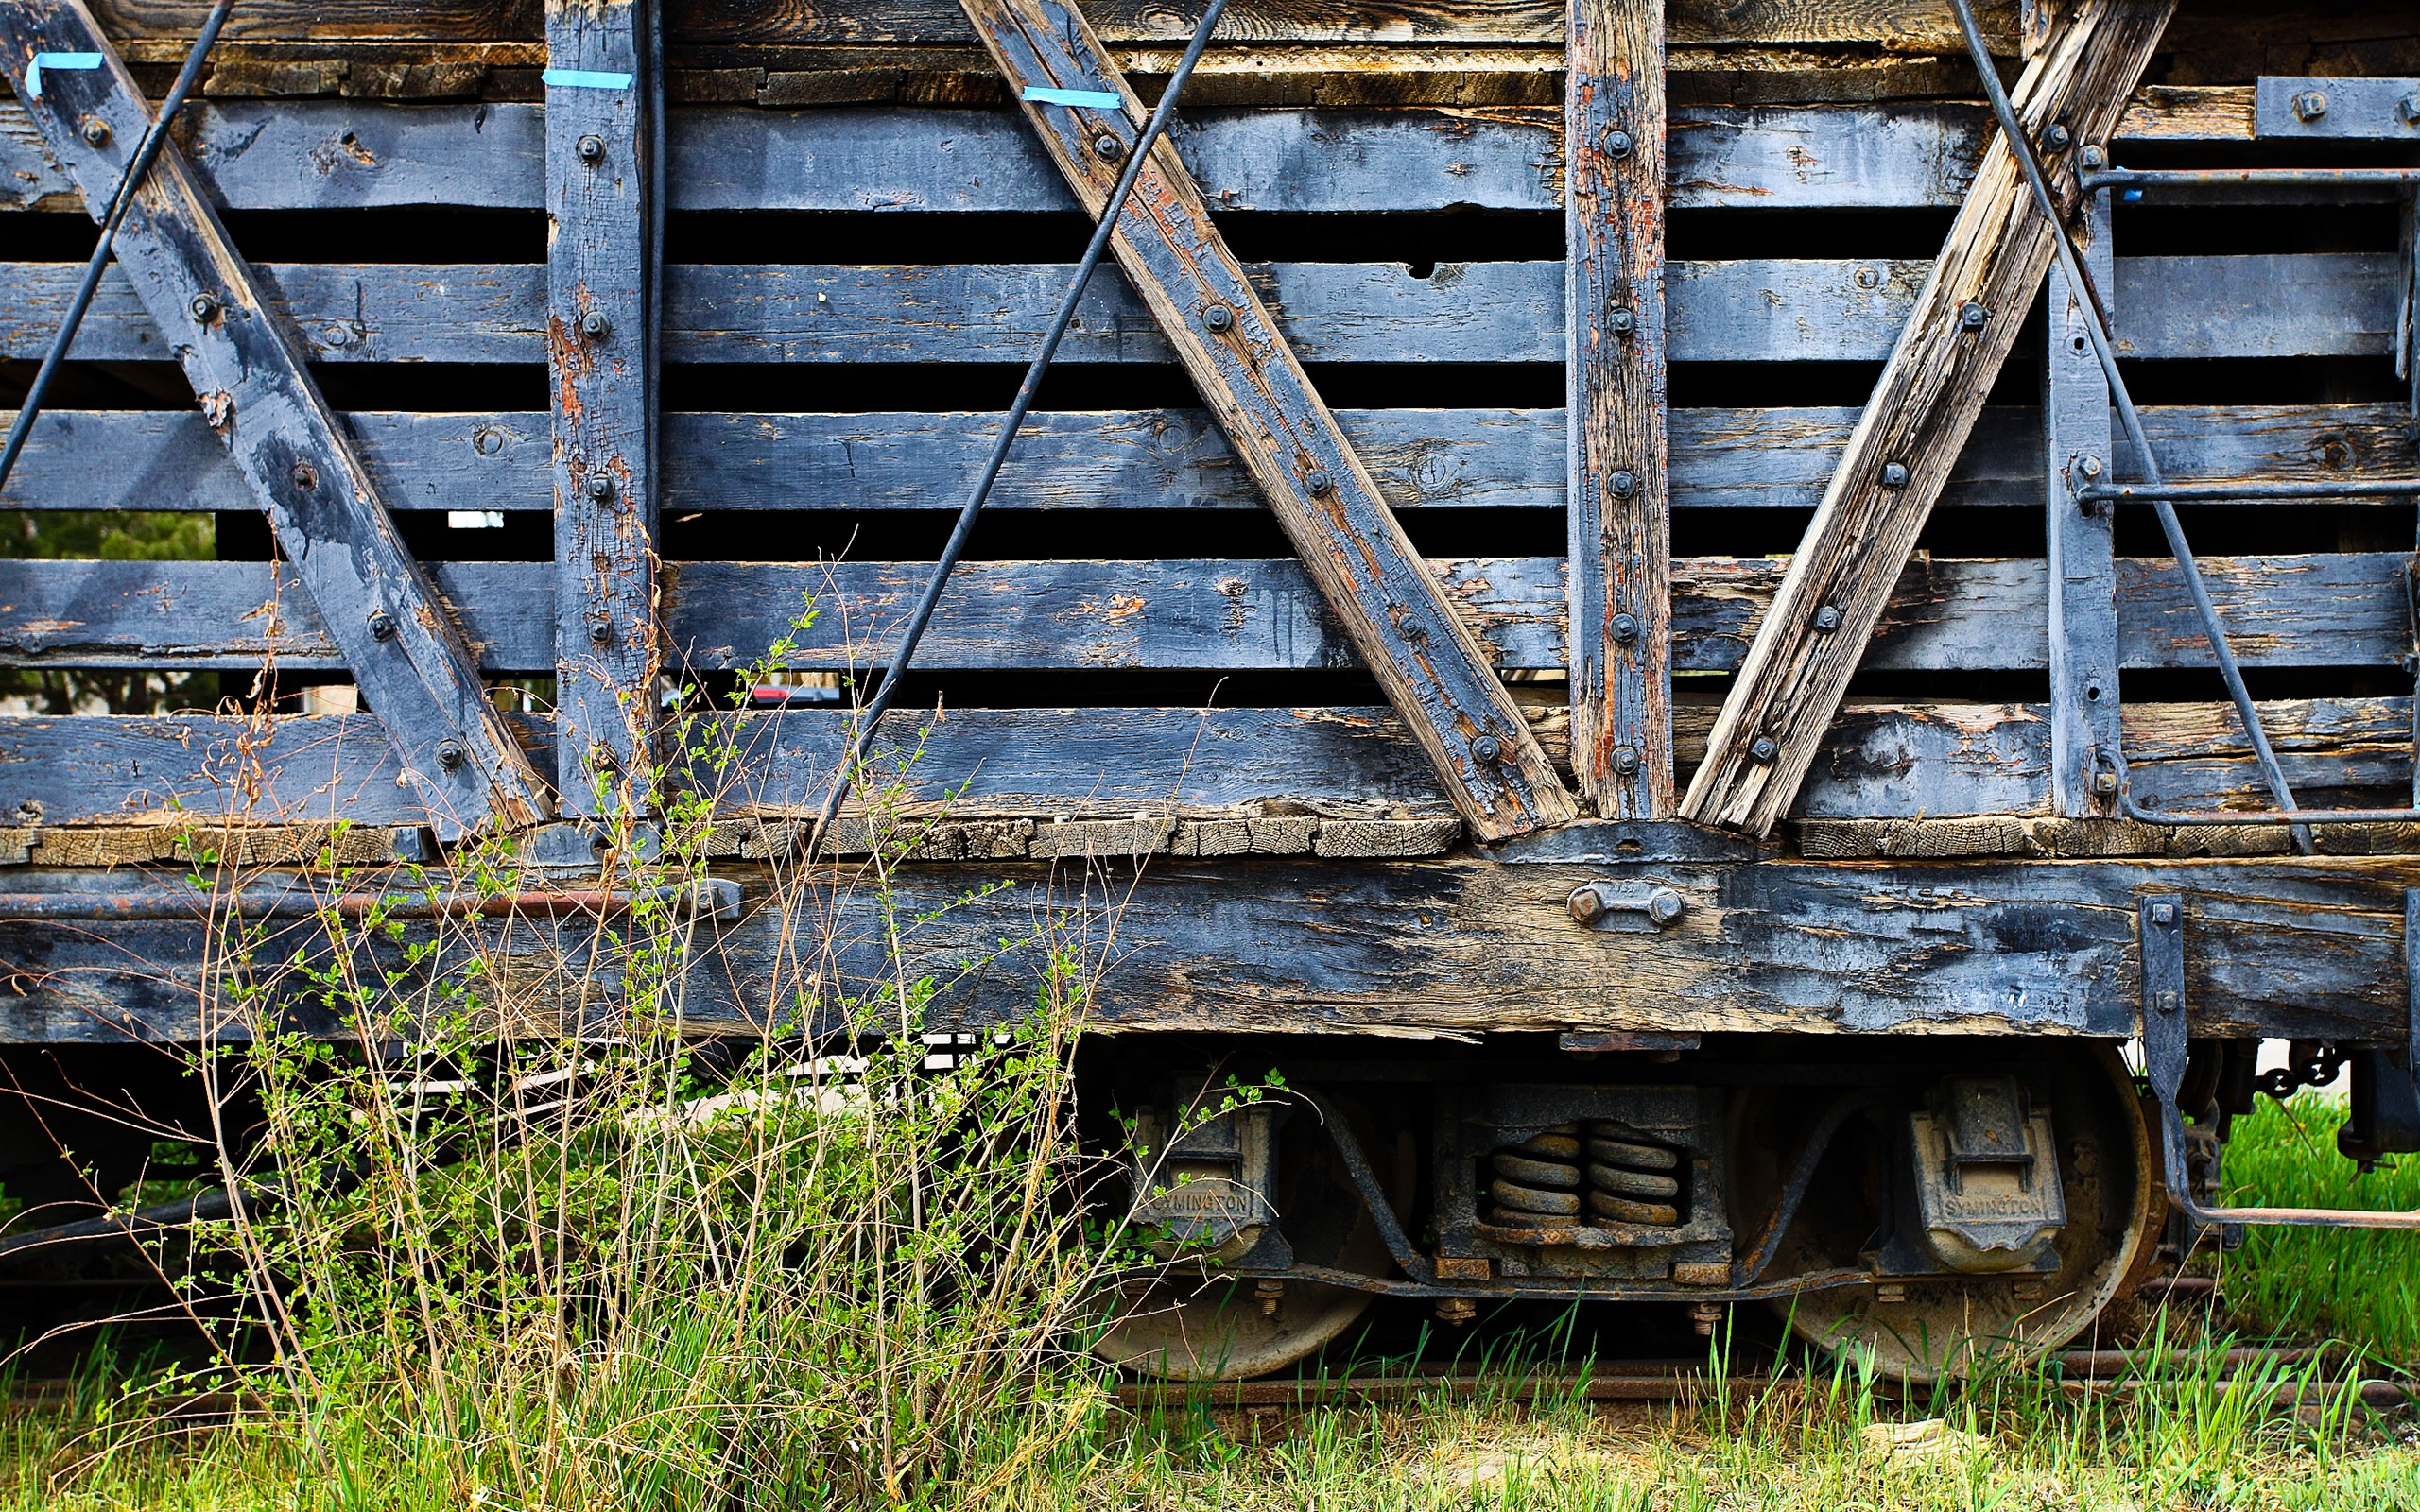 Wagon freight train wallpapers and images   wallpapers pictures 2560x1600